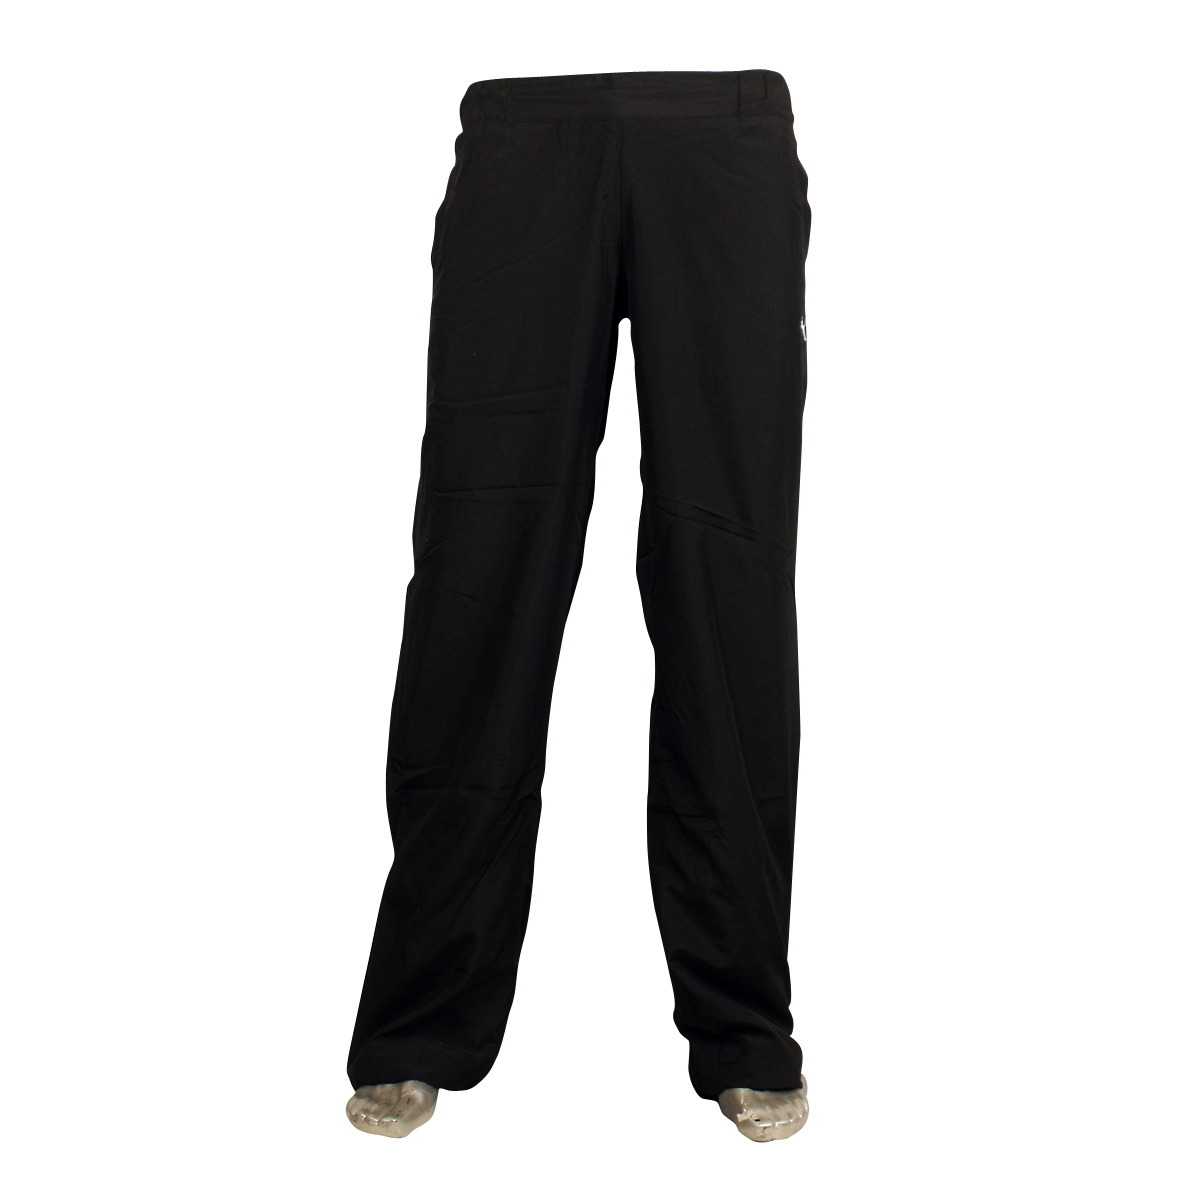 Shop for track pants womens online at Target. Free shipping on purchases over $35 and save 5% every day with your Target REDcard.